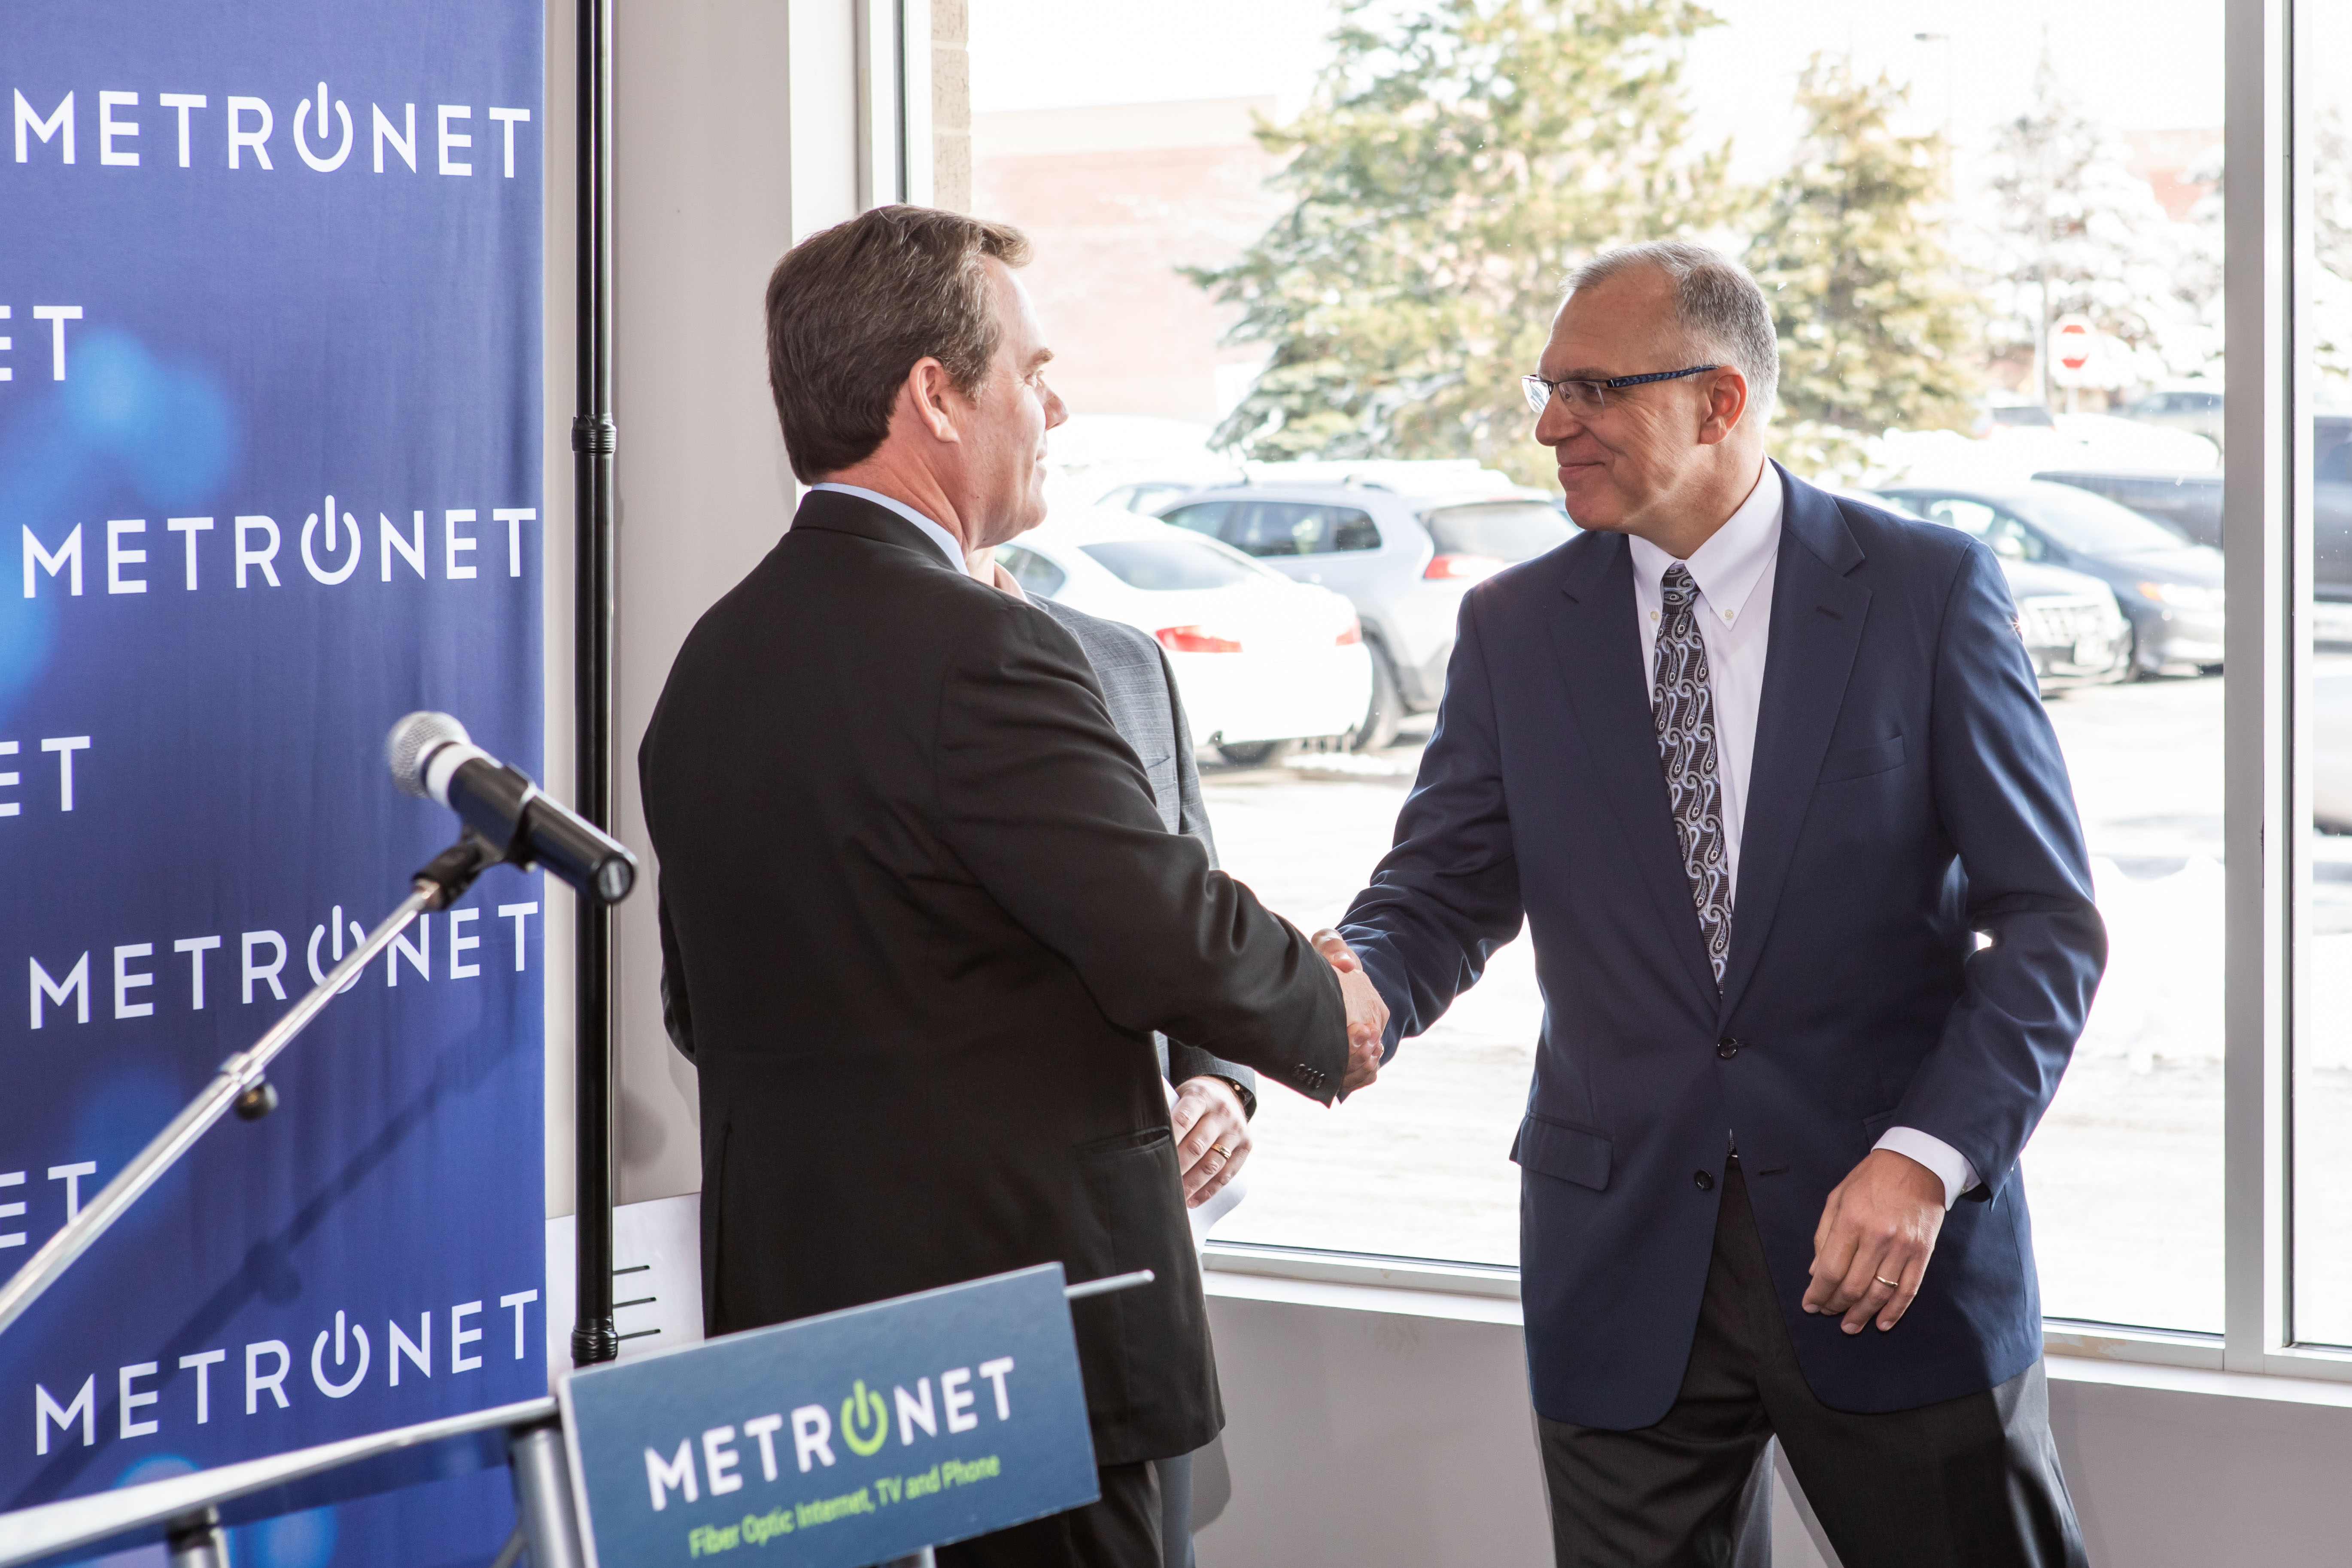 New Business, MetroNet, Officially Activates the Fox River